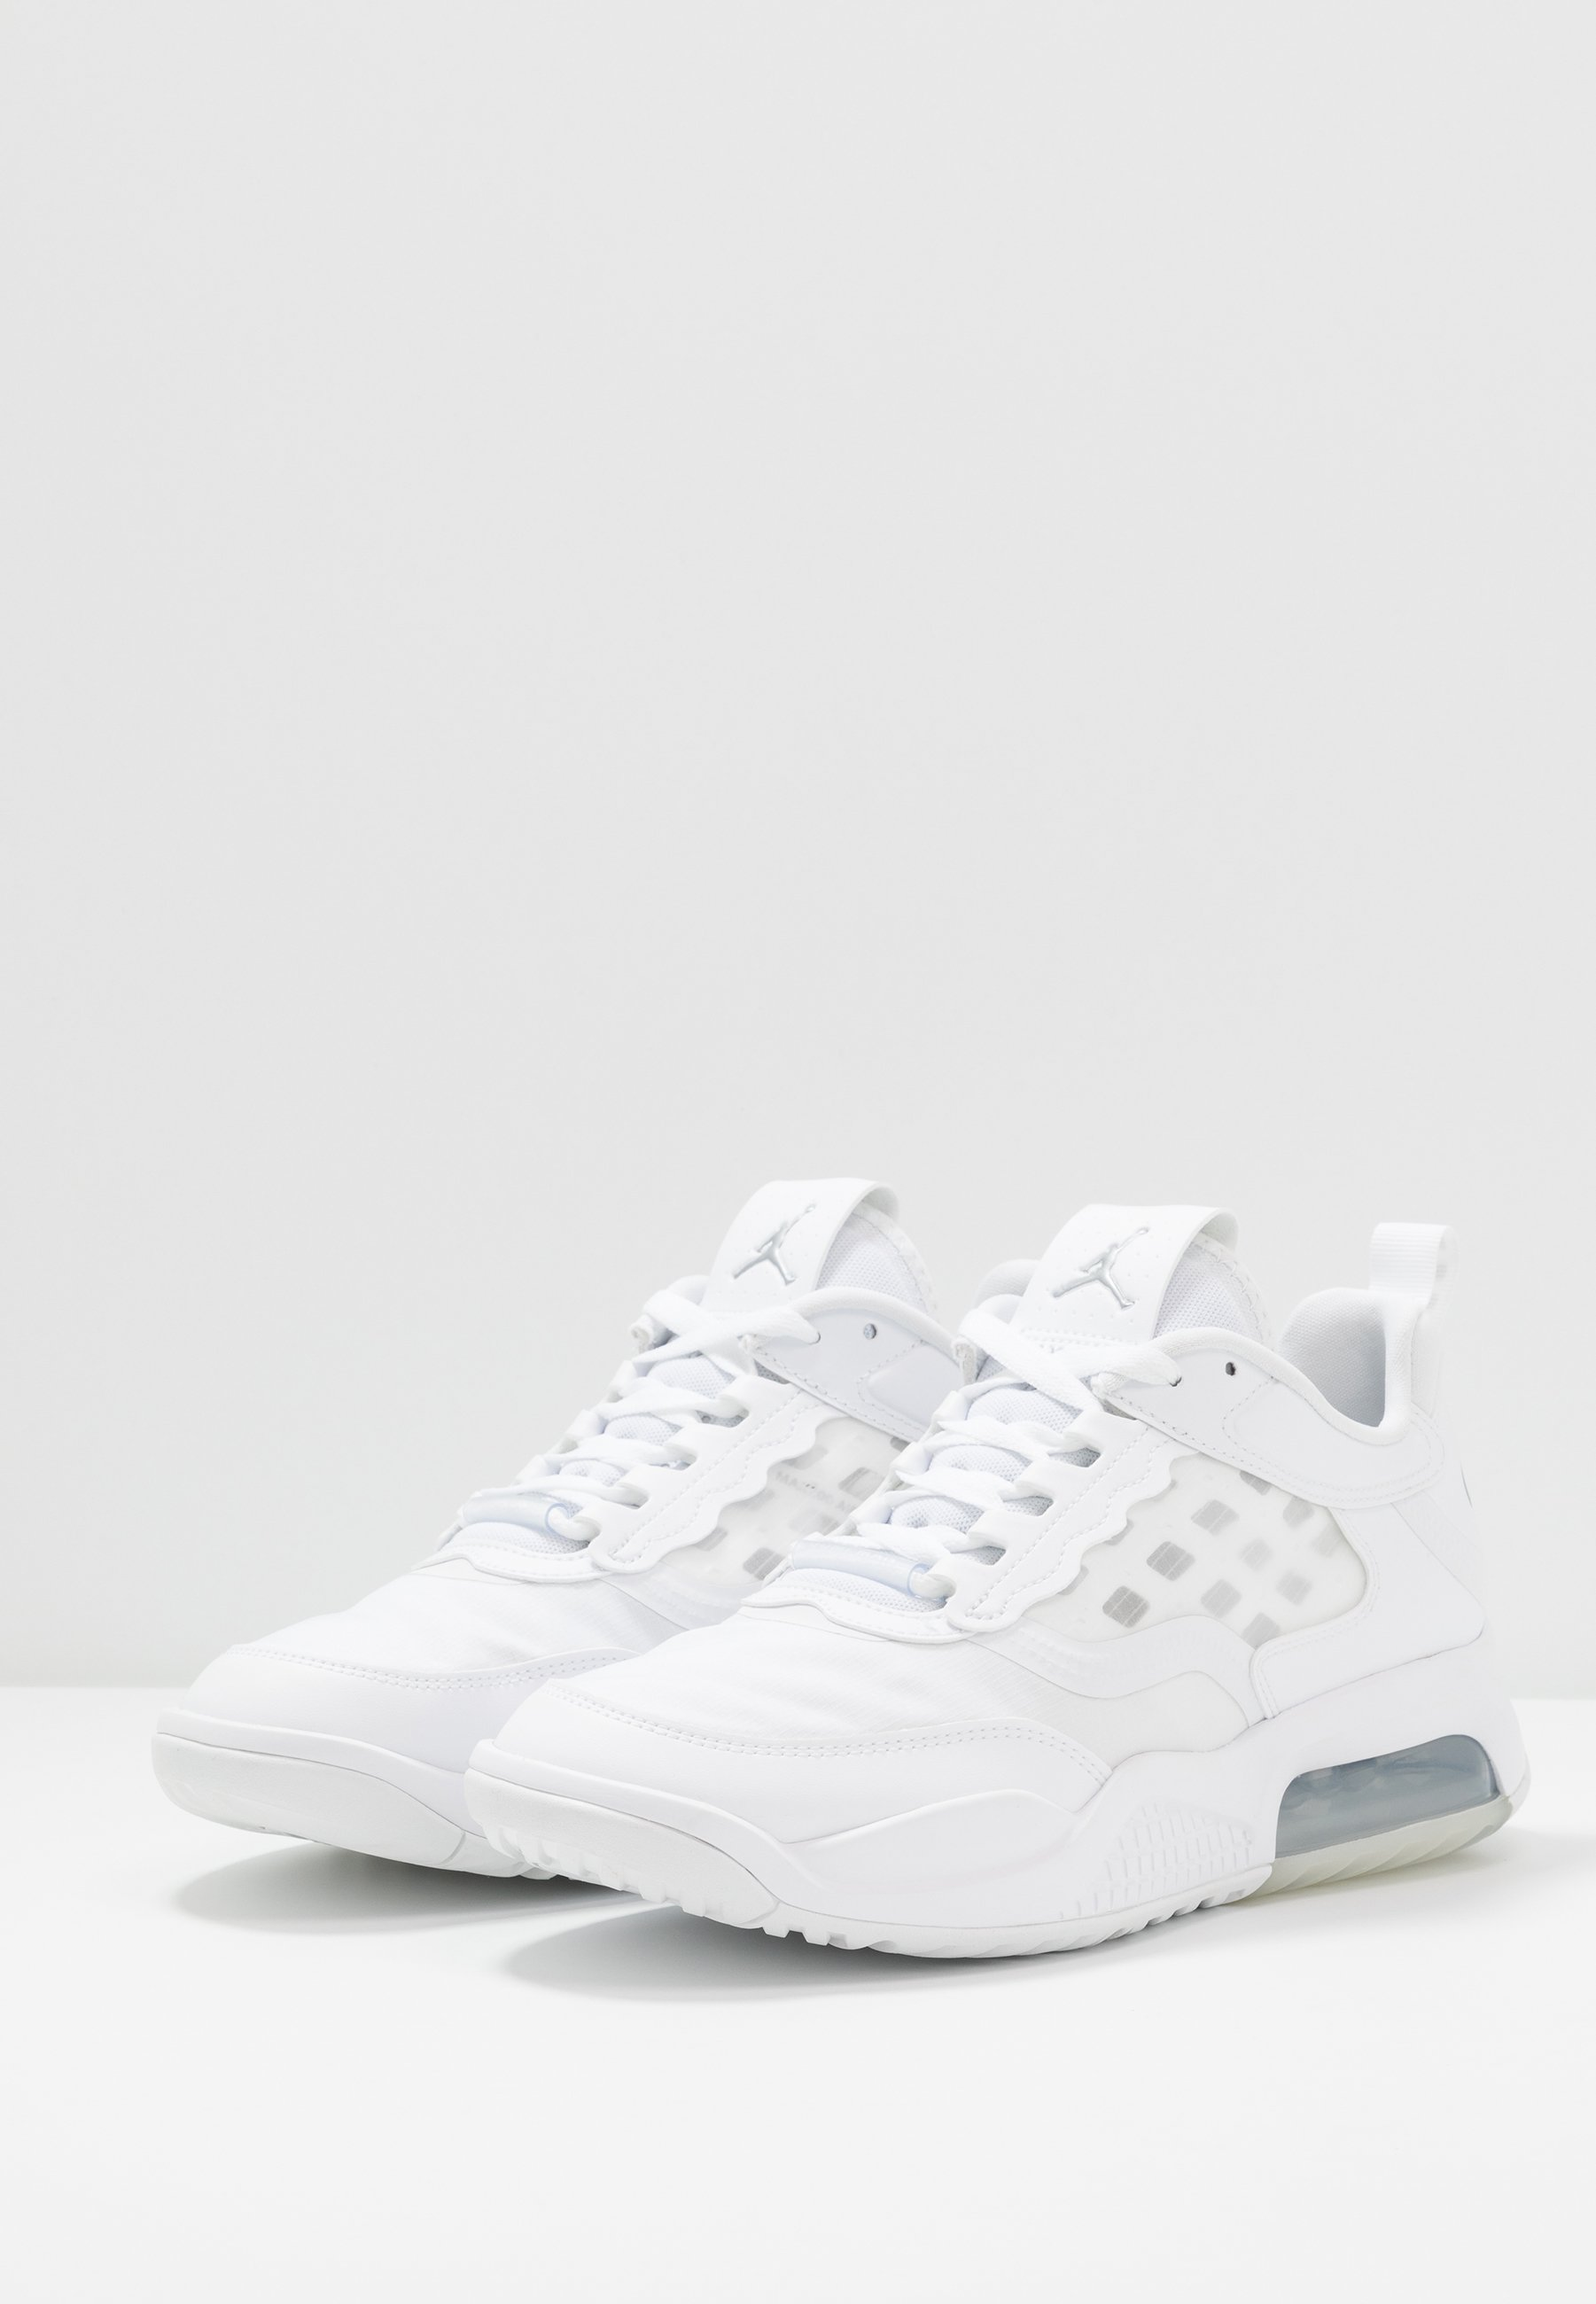 Jordan MAX 200 Baskets basses white ZALANDO.FR